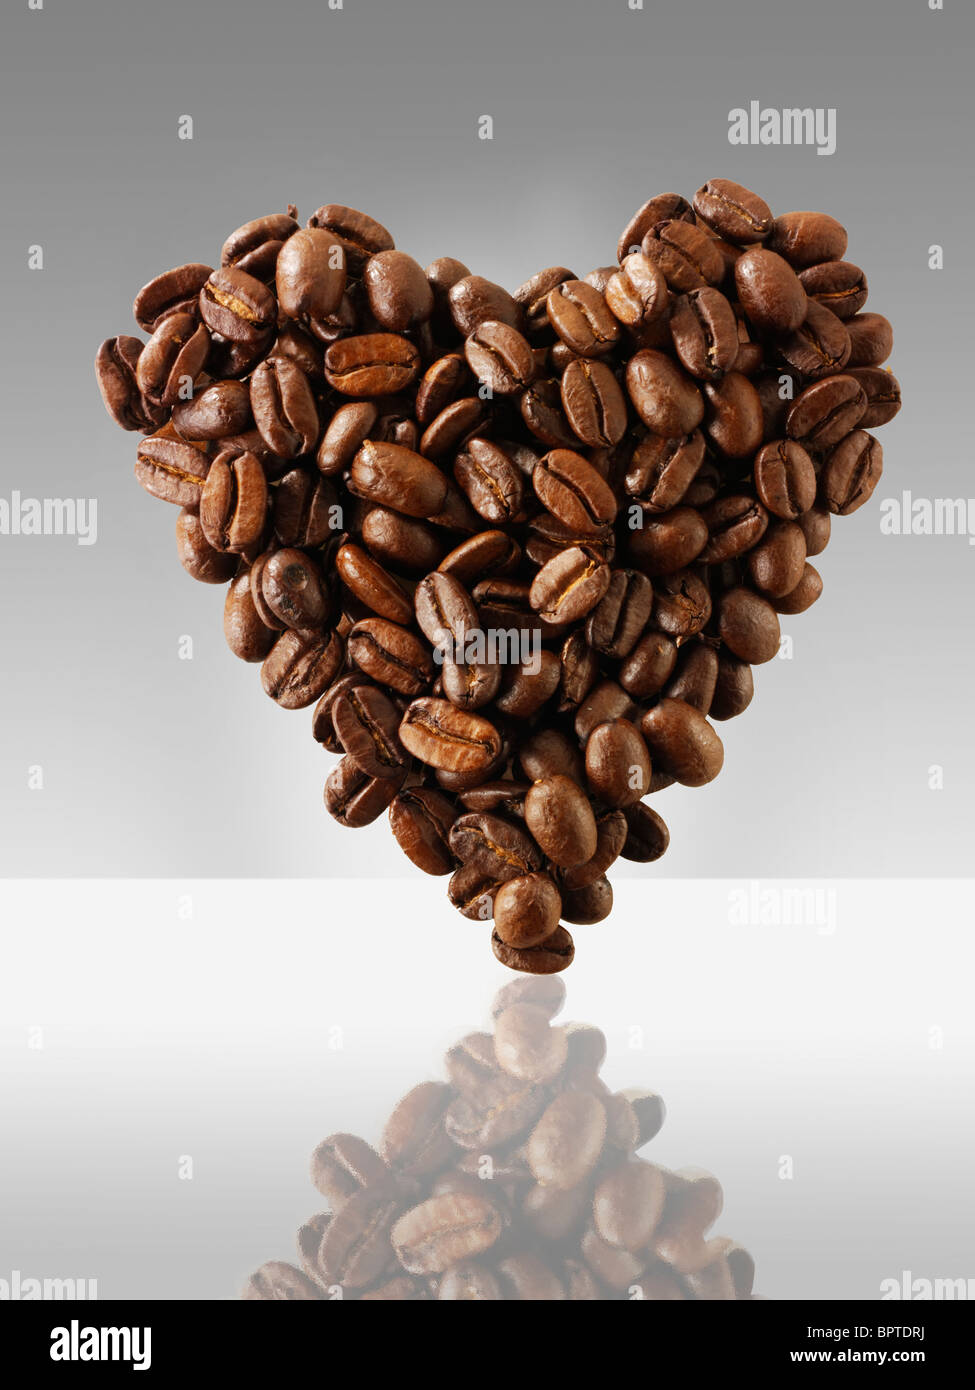 `Coffee beans in a heart shape, I love Coffee photo, picture & image - Stock Image